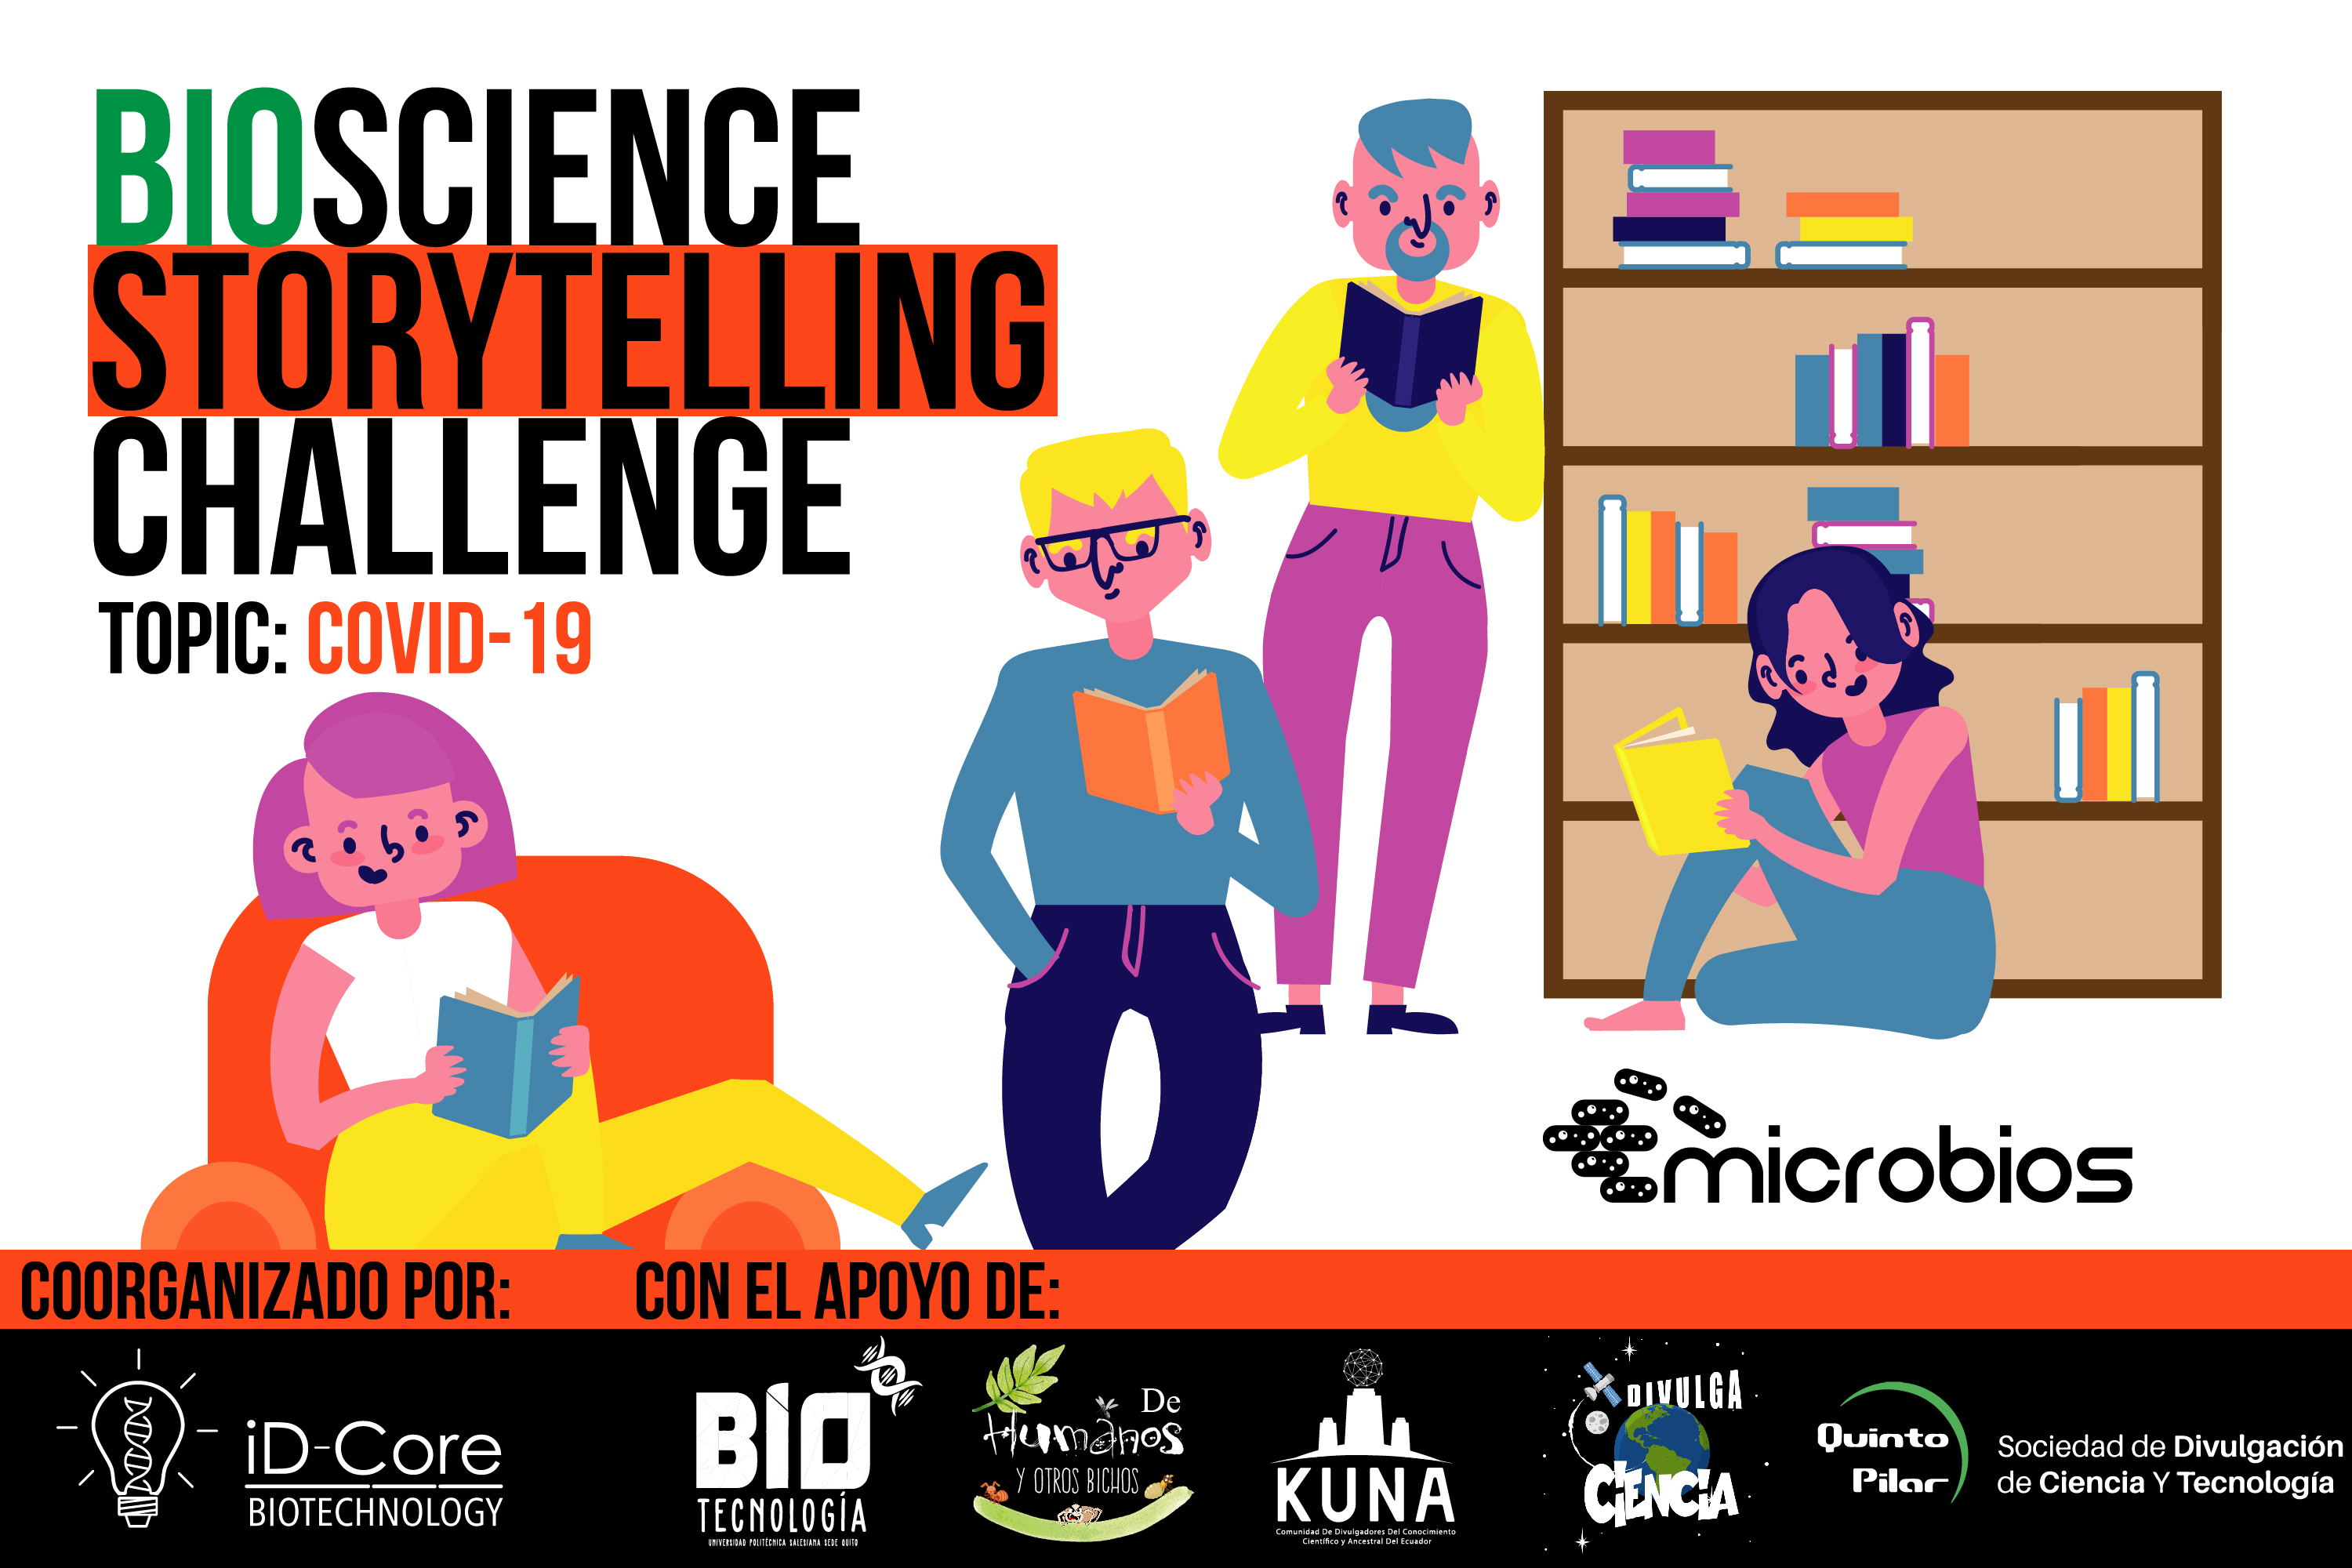 Bioscience Storytelling Challenge by microbios